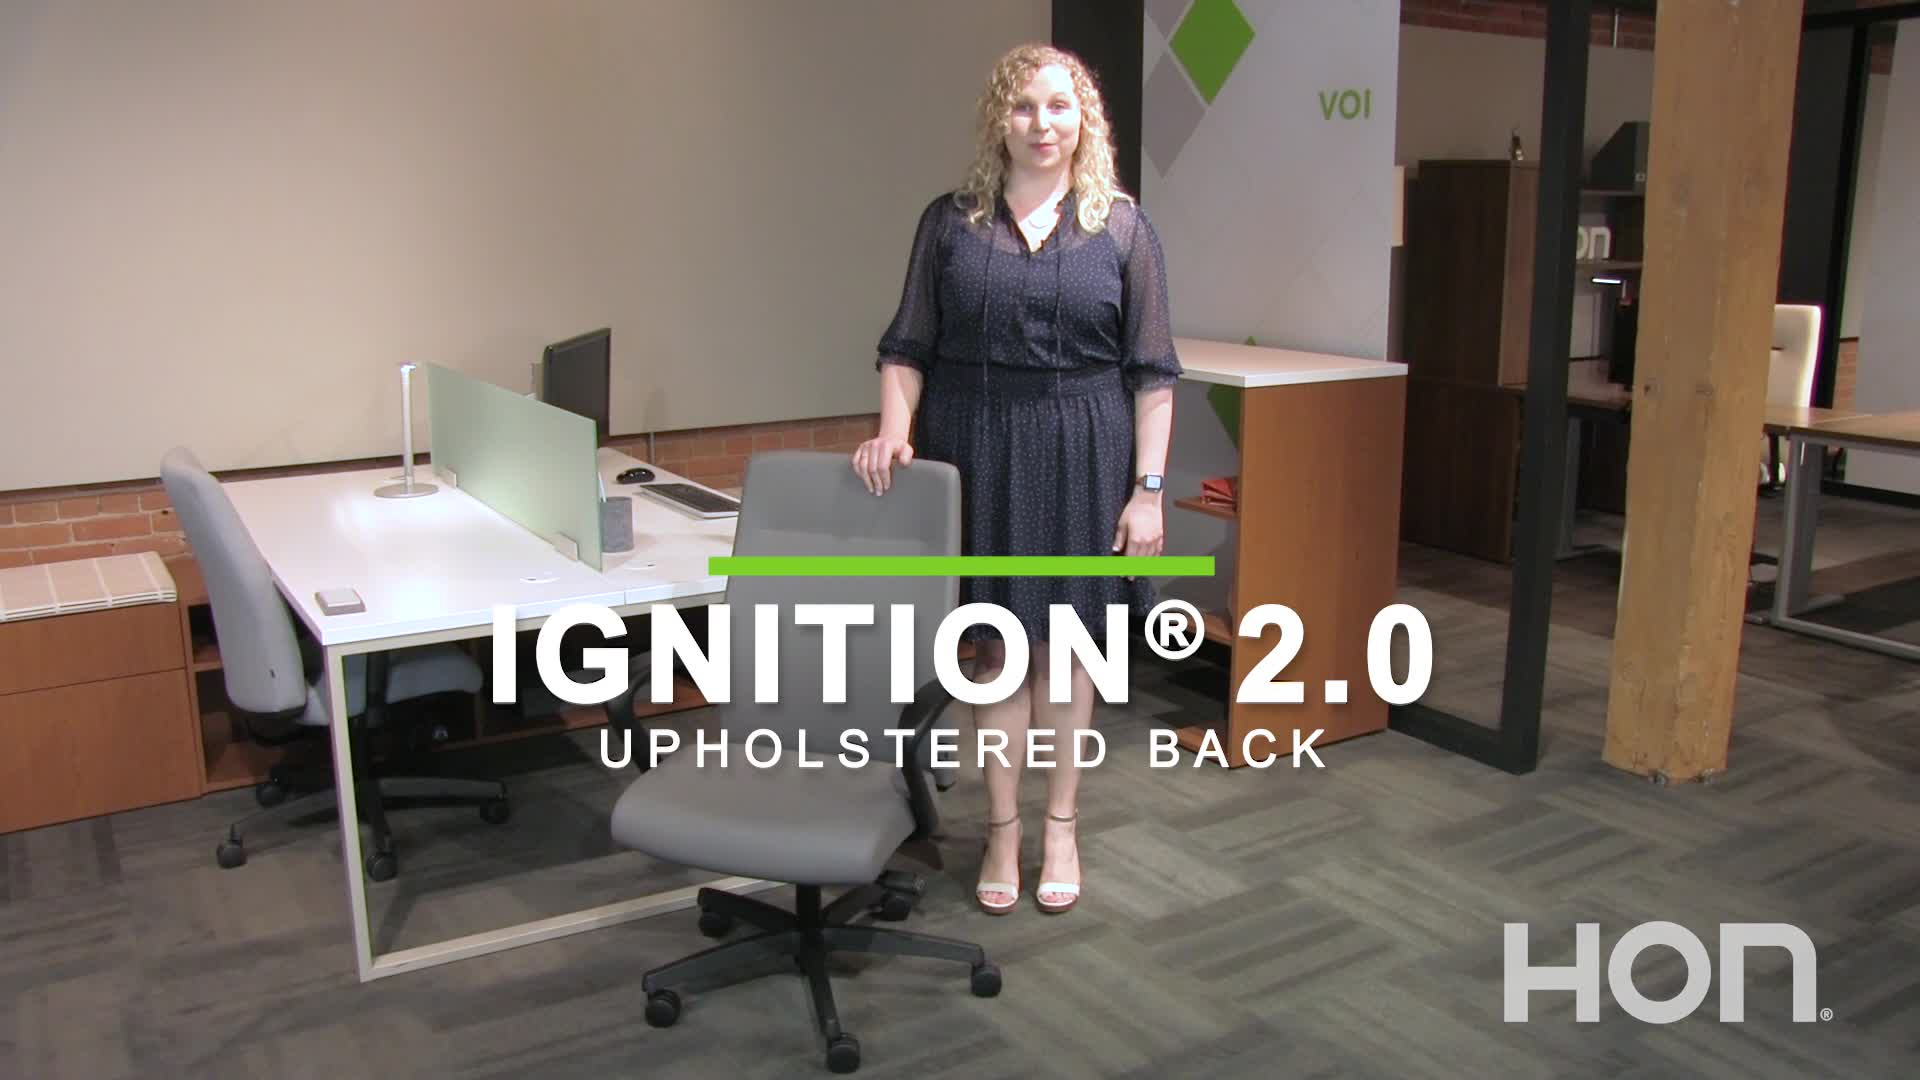 Ignition 2.0 Upholstered Back Two Minute Tutorial video link